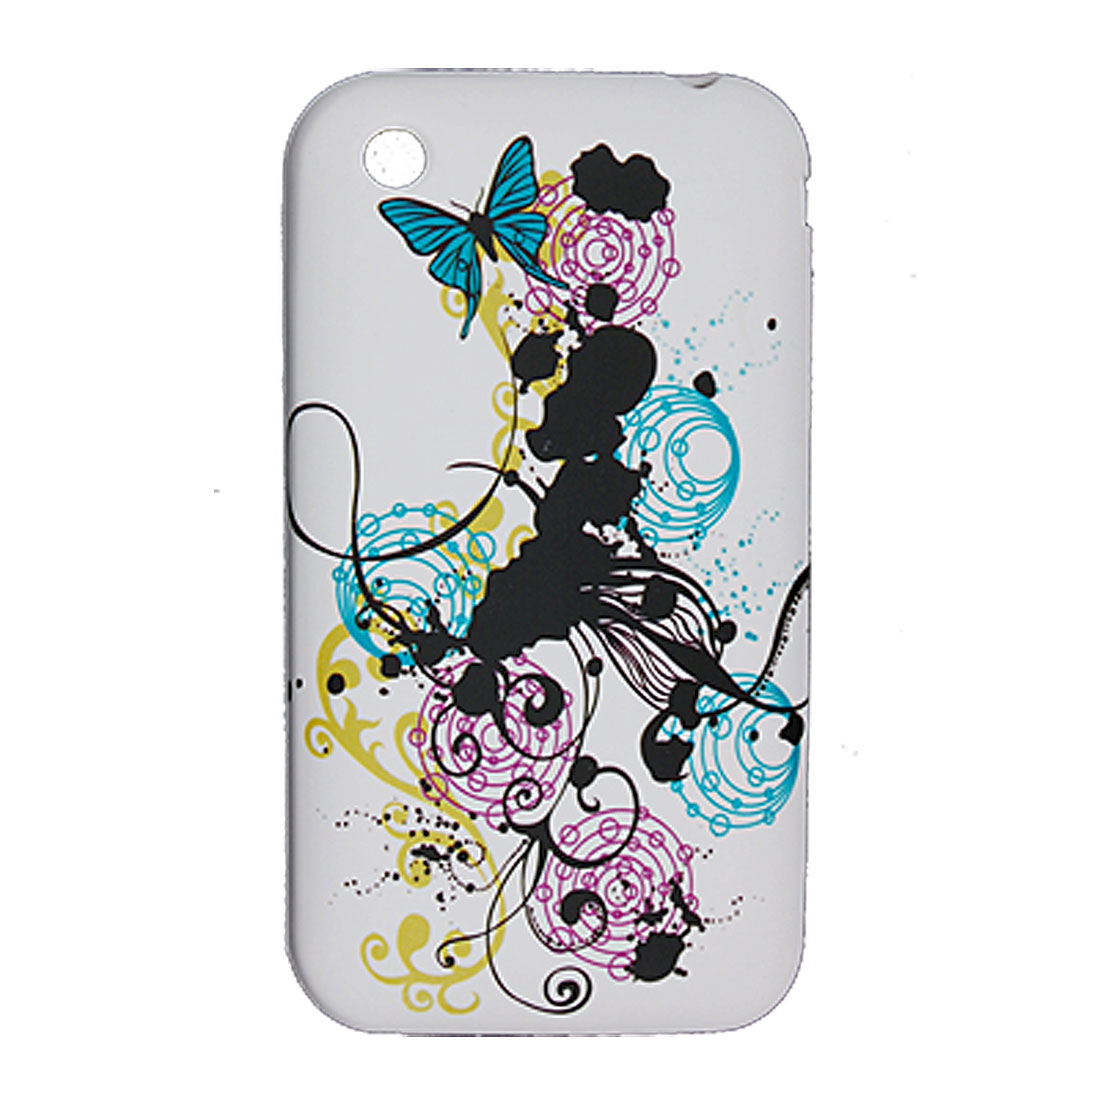 Round Print Rubberized Plastic Cover for iPhone 3G 3GS